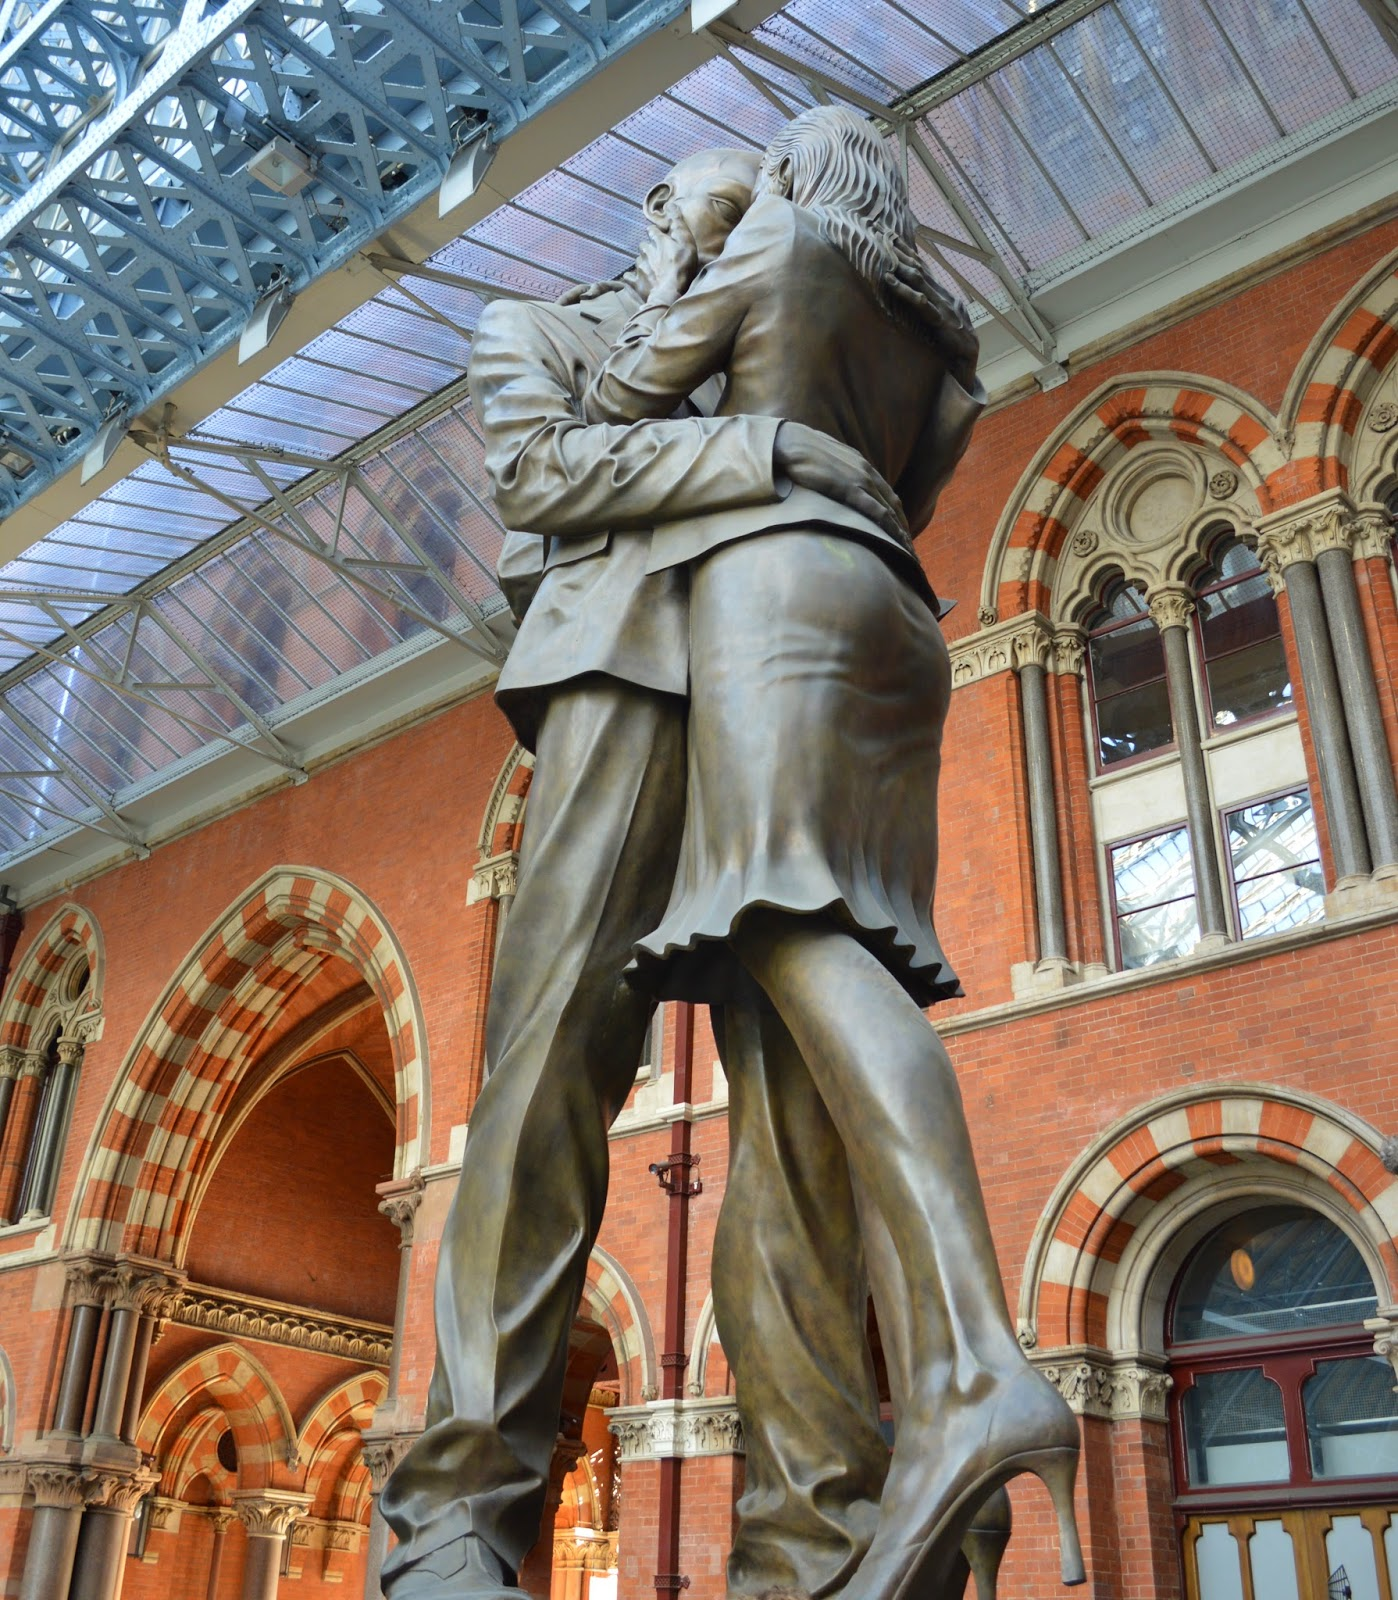 St Pacras Station, London, architecture, photo, photography, railway station, trains, visit, The Meeting Place, stature, Paul Day